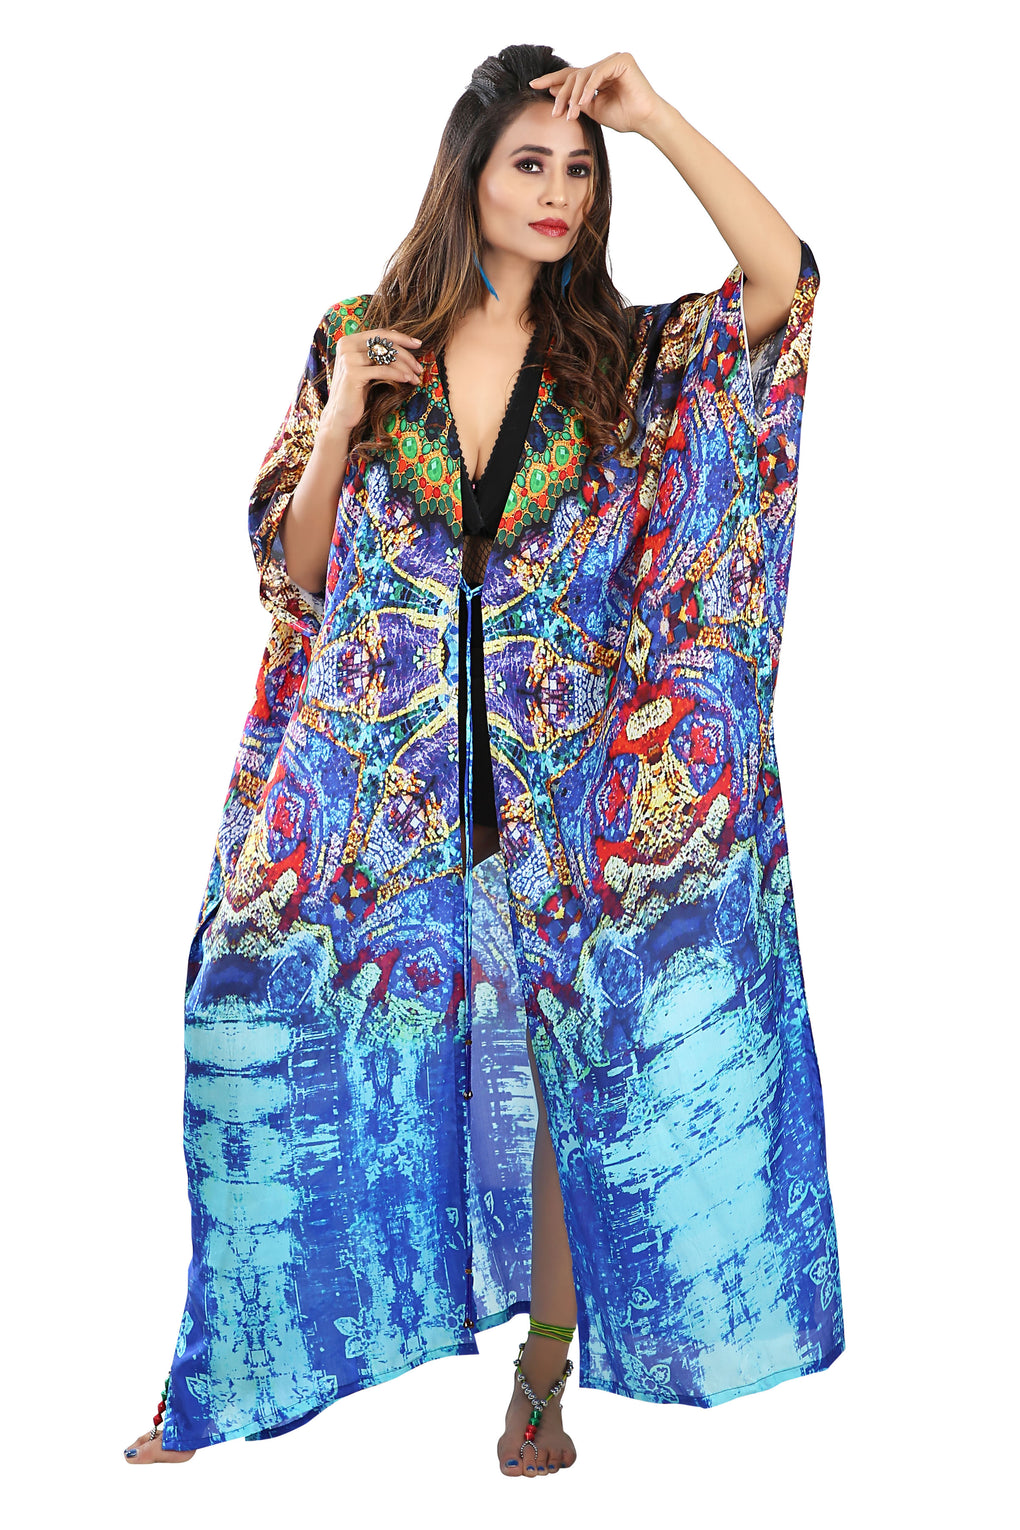 Blue colored animal print Beach Cover Up Holiday silk kimono Robe